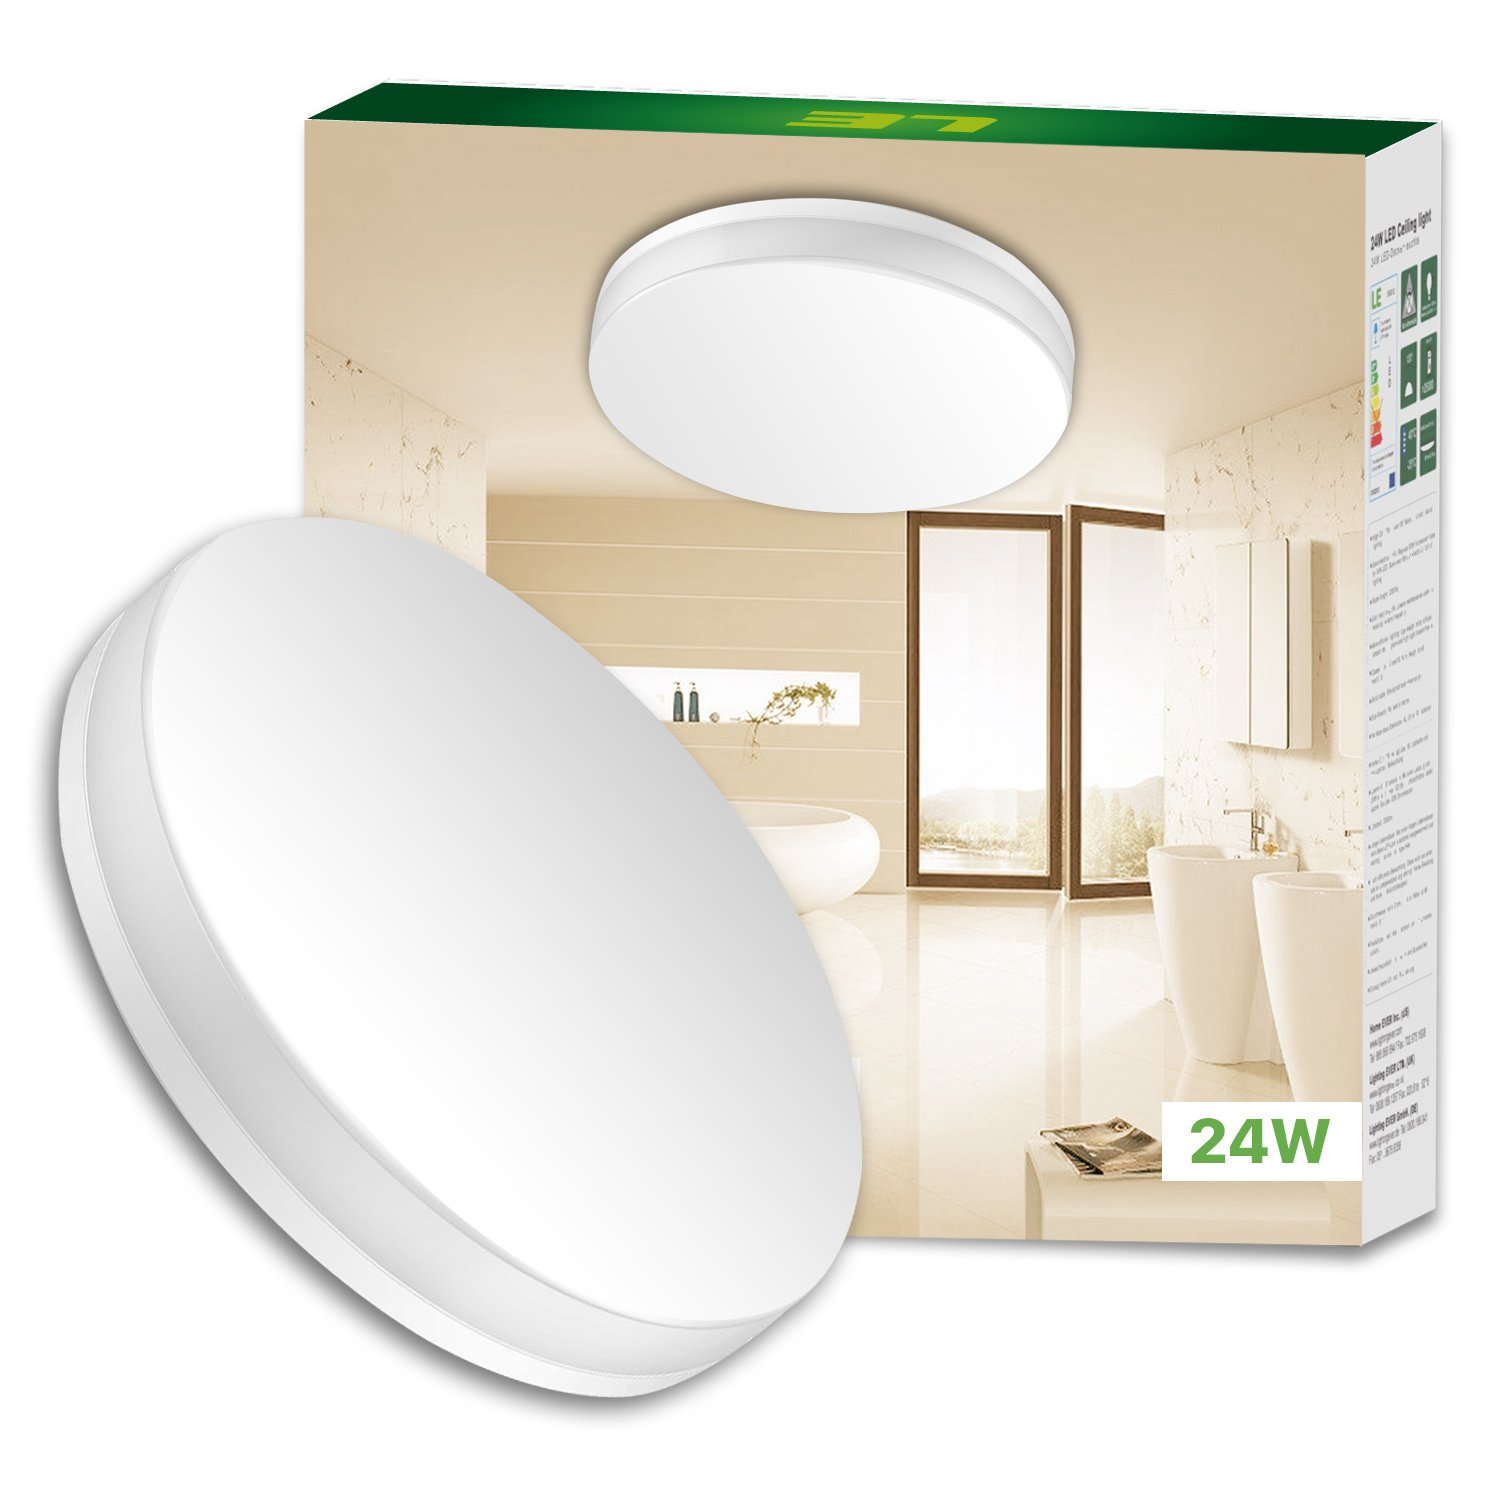 LE 24W Dimmable LED Ceiling Light 33cm Waterproof IP54 2100lm Warm White 120° Beam Angle 100W Incandescent Bulb Replacement Flush Mount Lighting for Bathroom Bedroom Kitchen Hallway [Energy Class A+] Lighting EVER